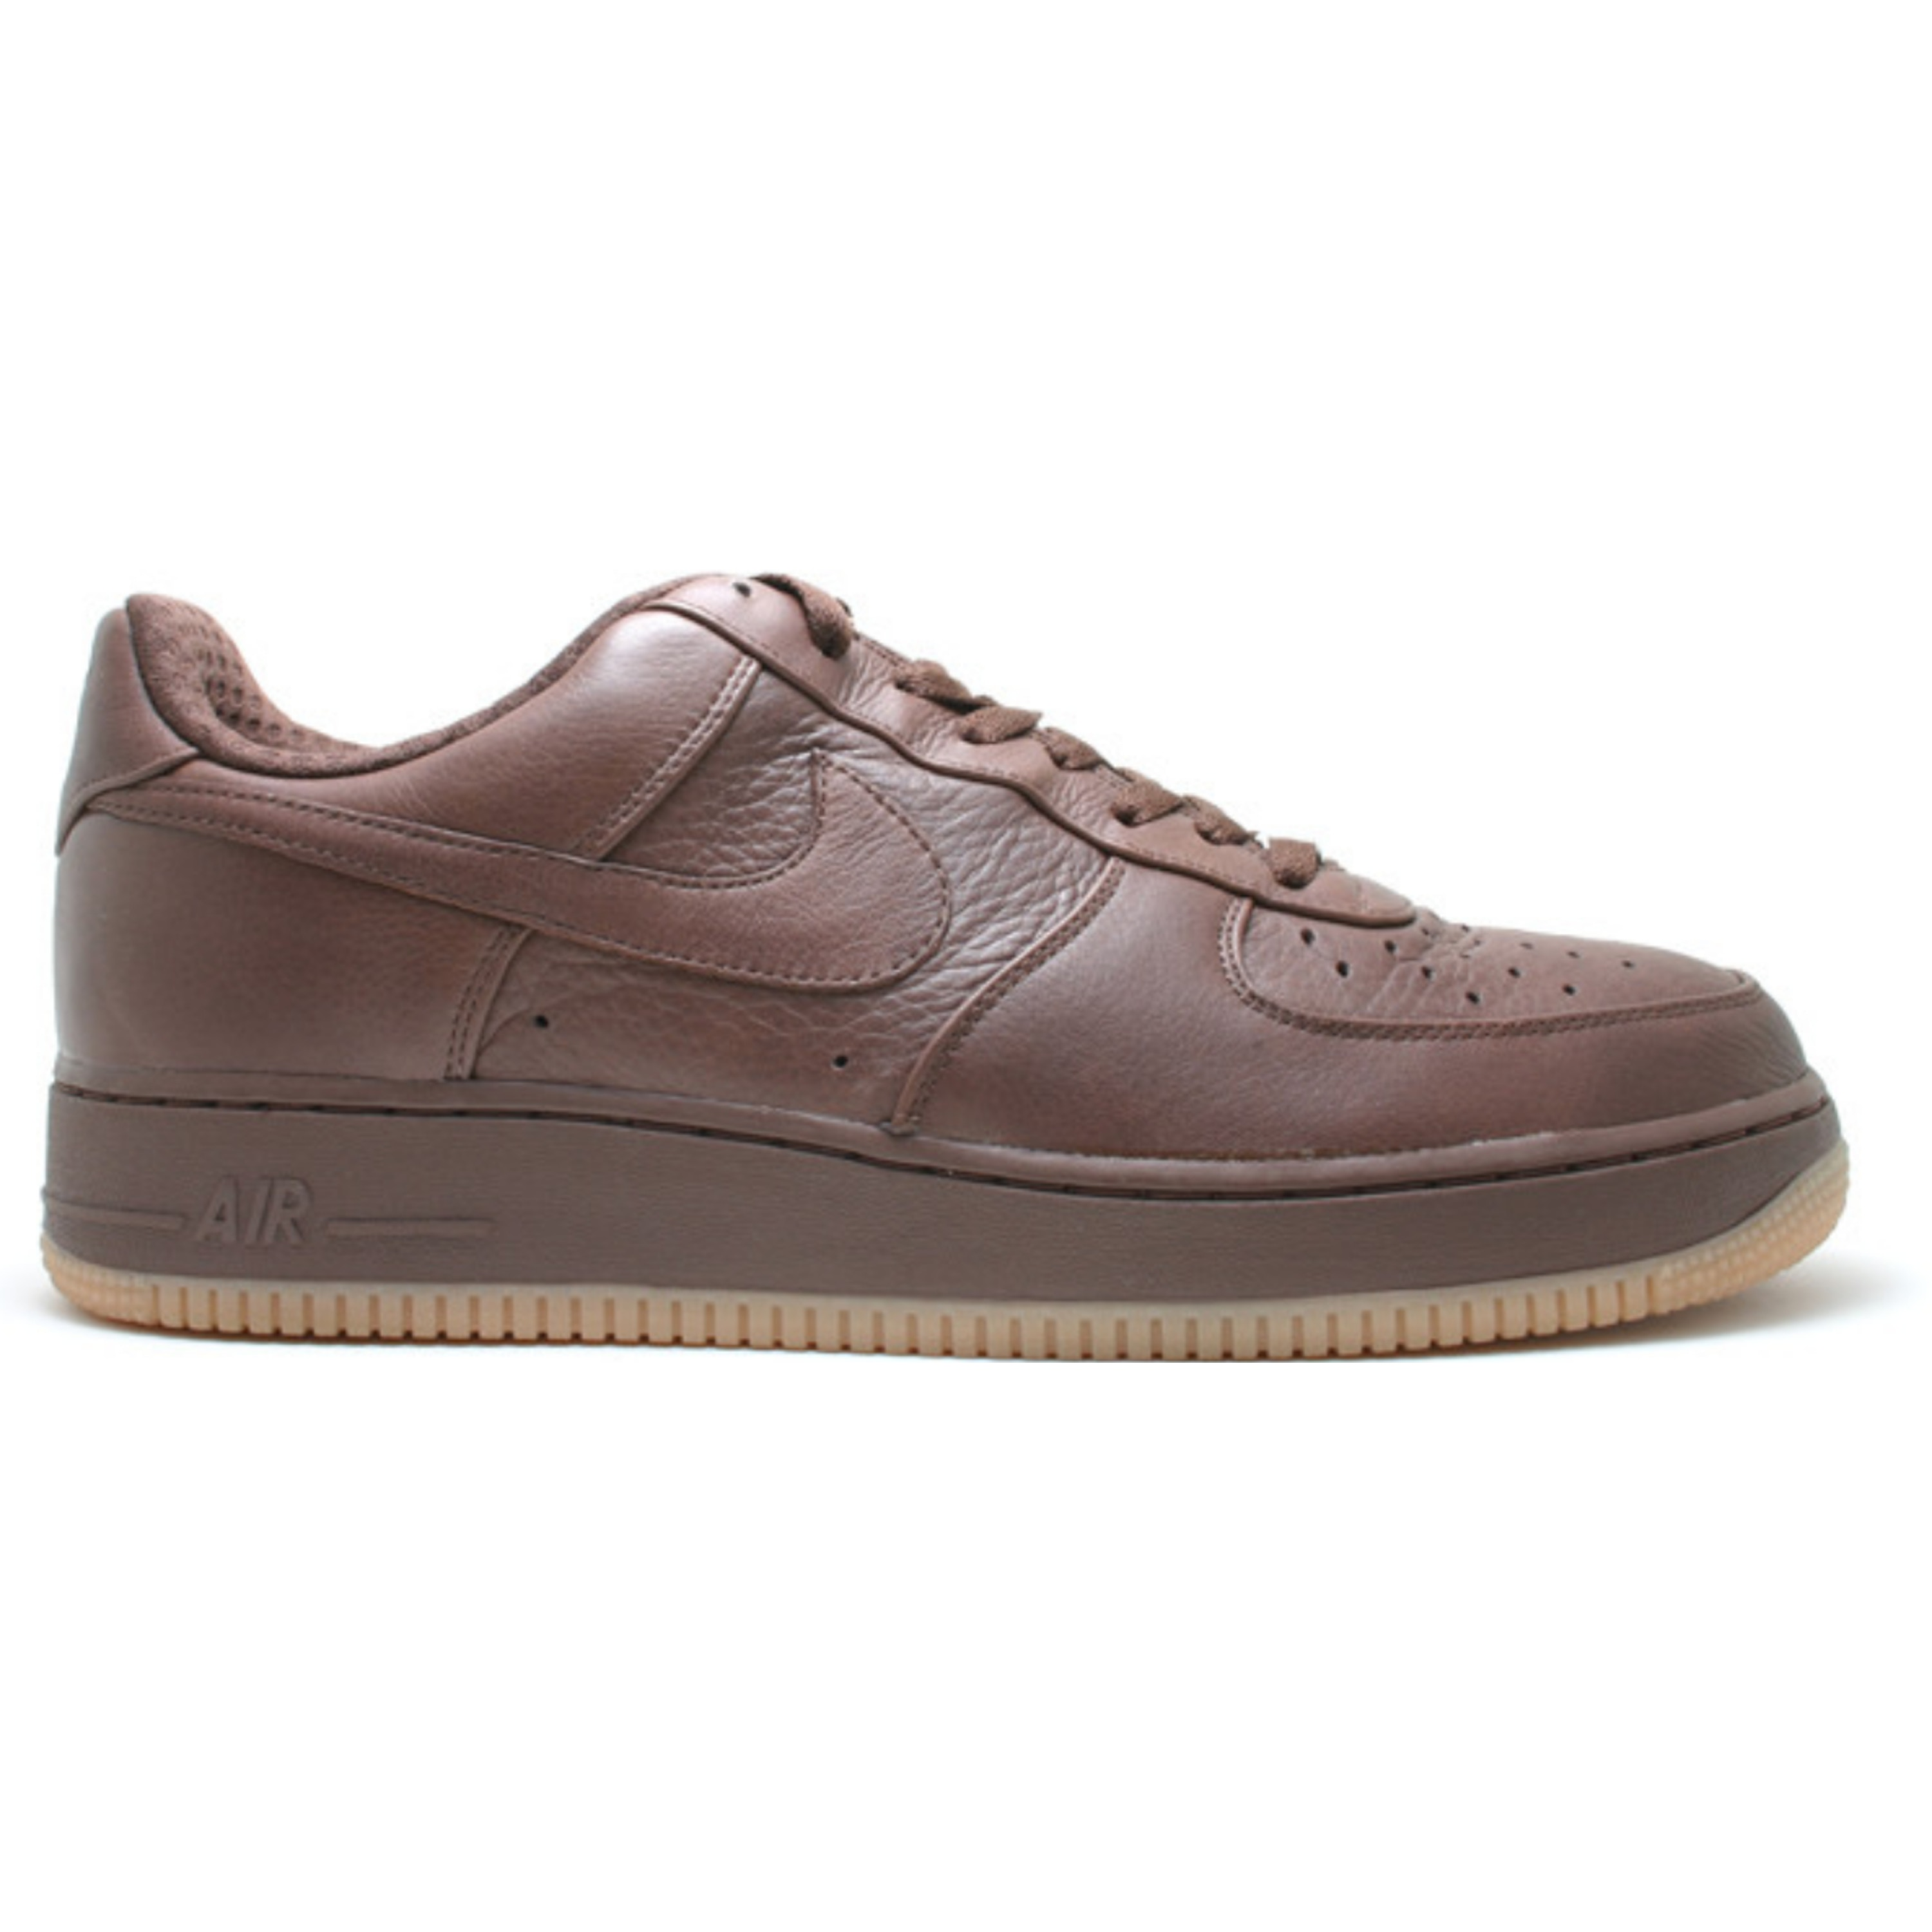 Nike Air Force 1 Low Light Chocolate (315180-221)